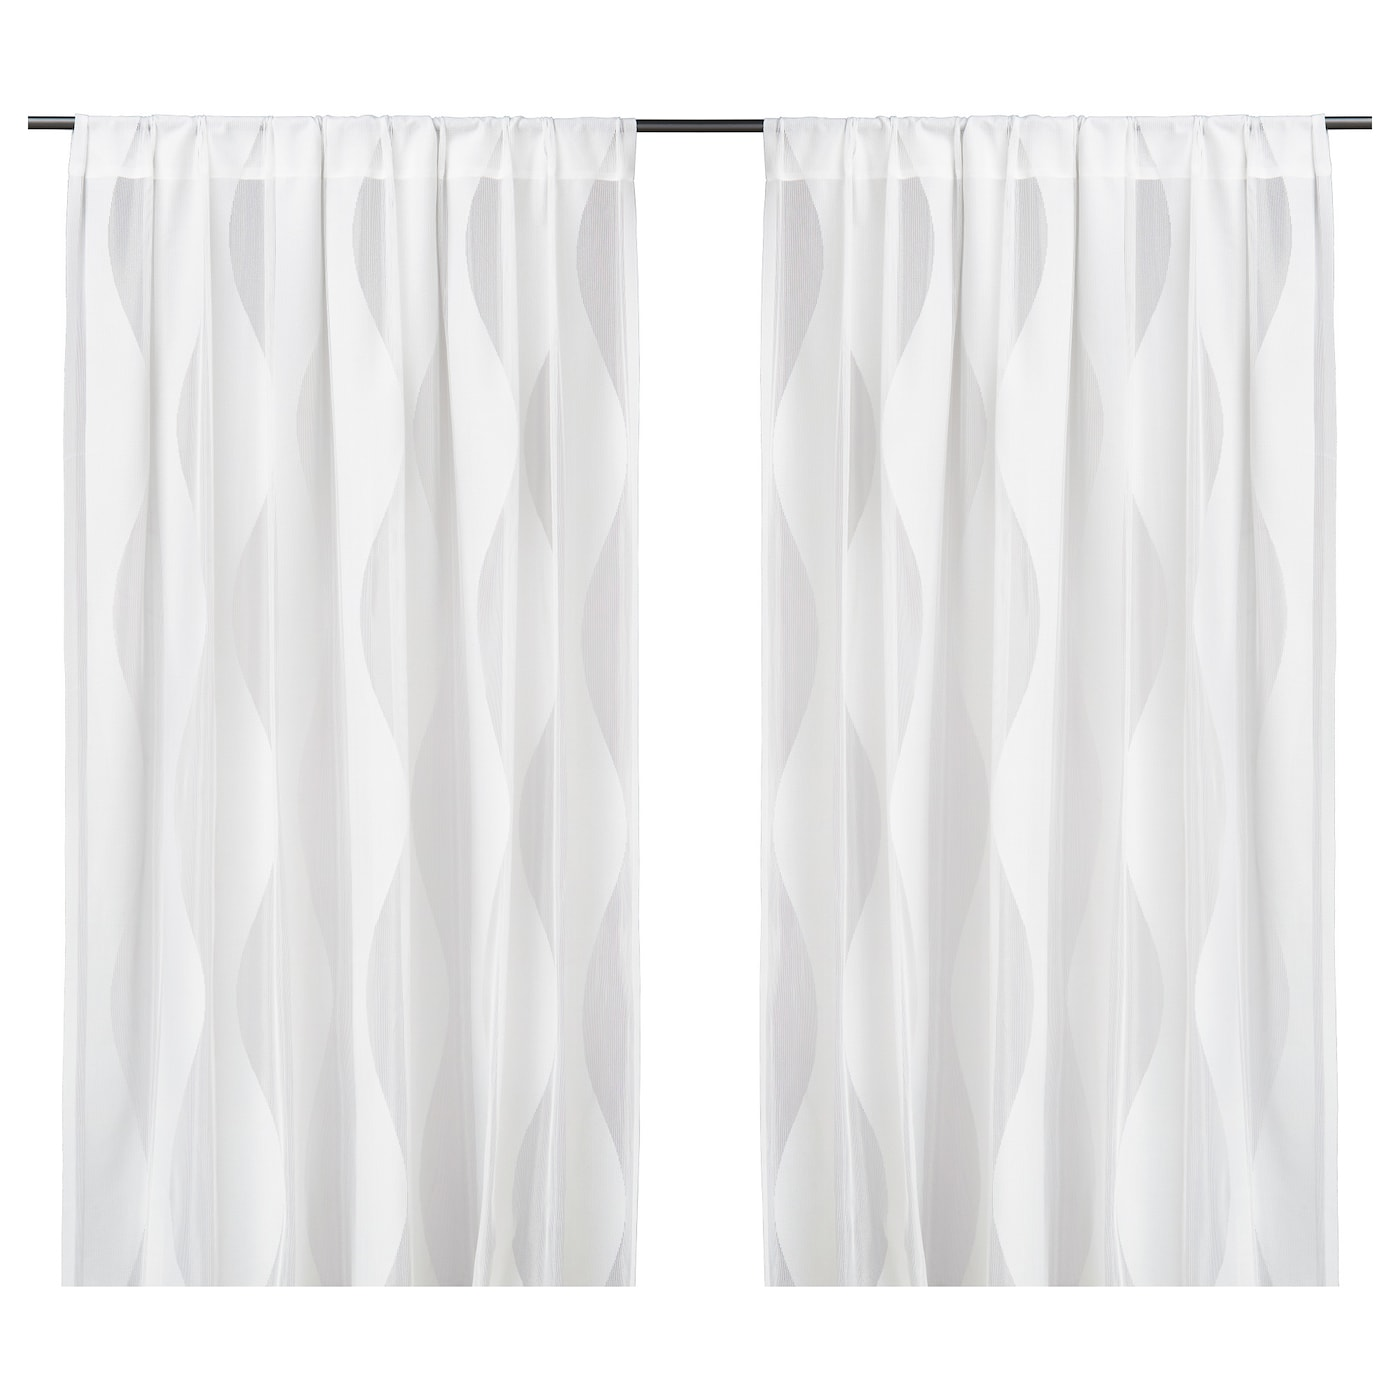 Curtains Murruta Net Curtains 1 Pair White 145x250 Cm Ikea